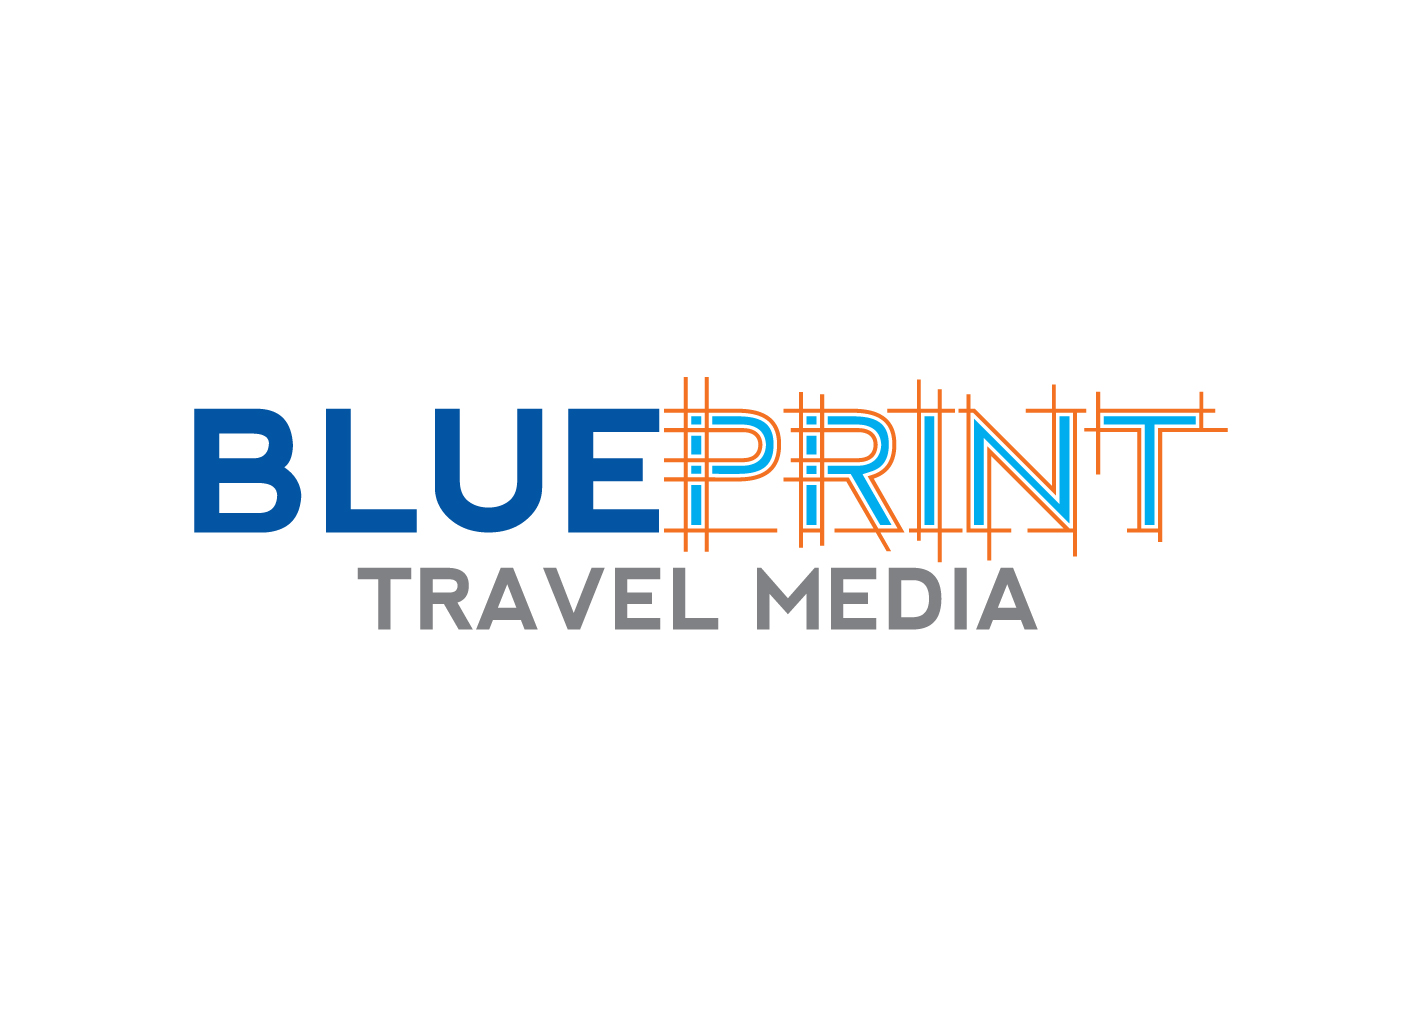 Playful professional tourism logo design for blueprint travel logo design by creativebugs for blueprint travel media design 9571225 malvernweather Image collections